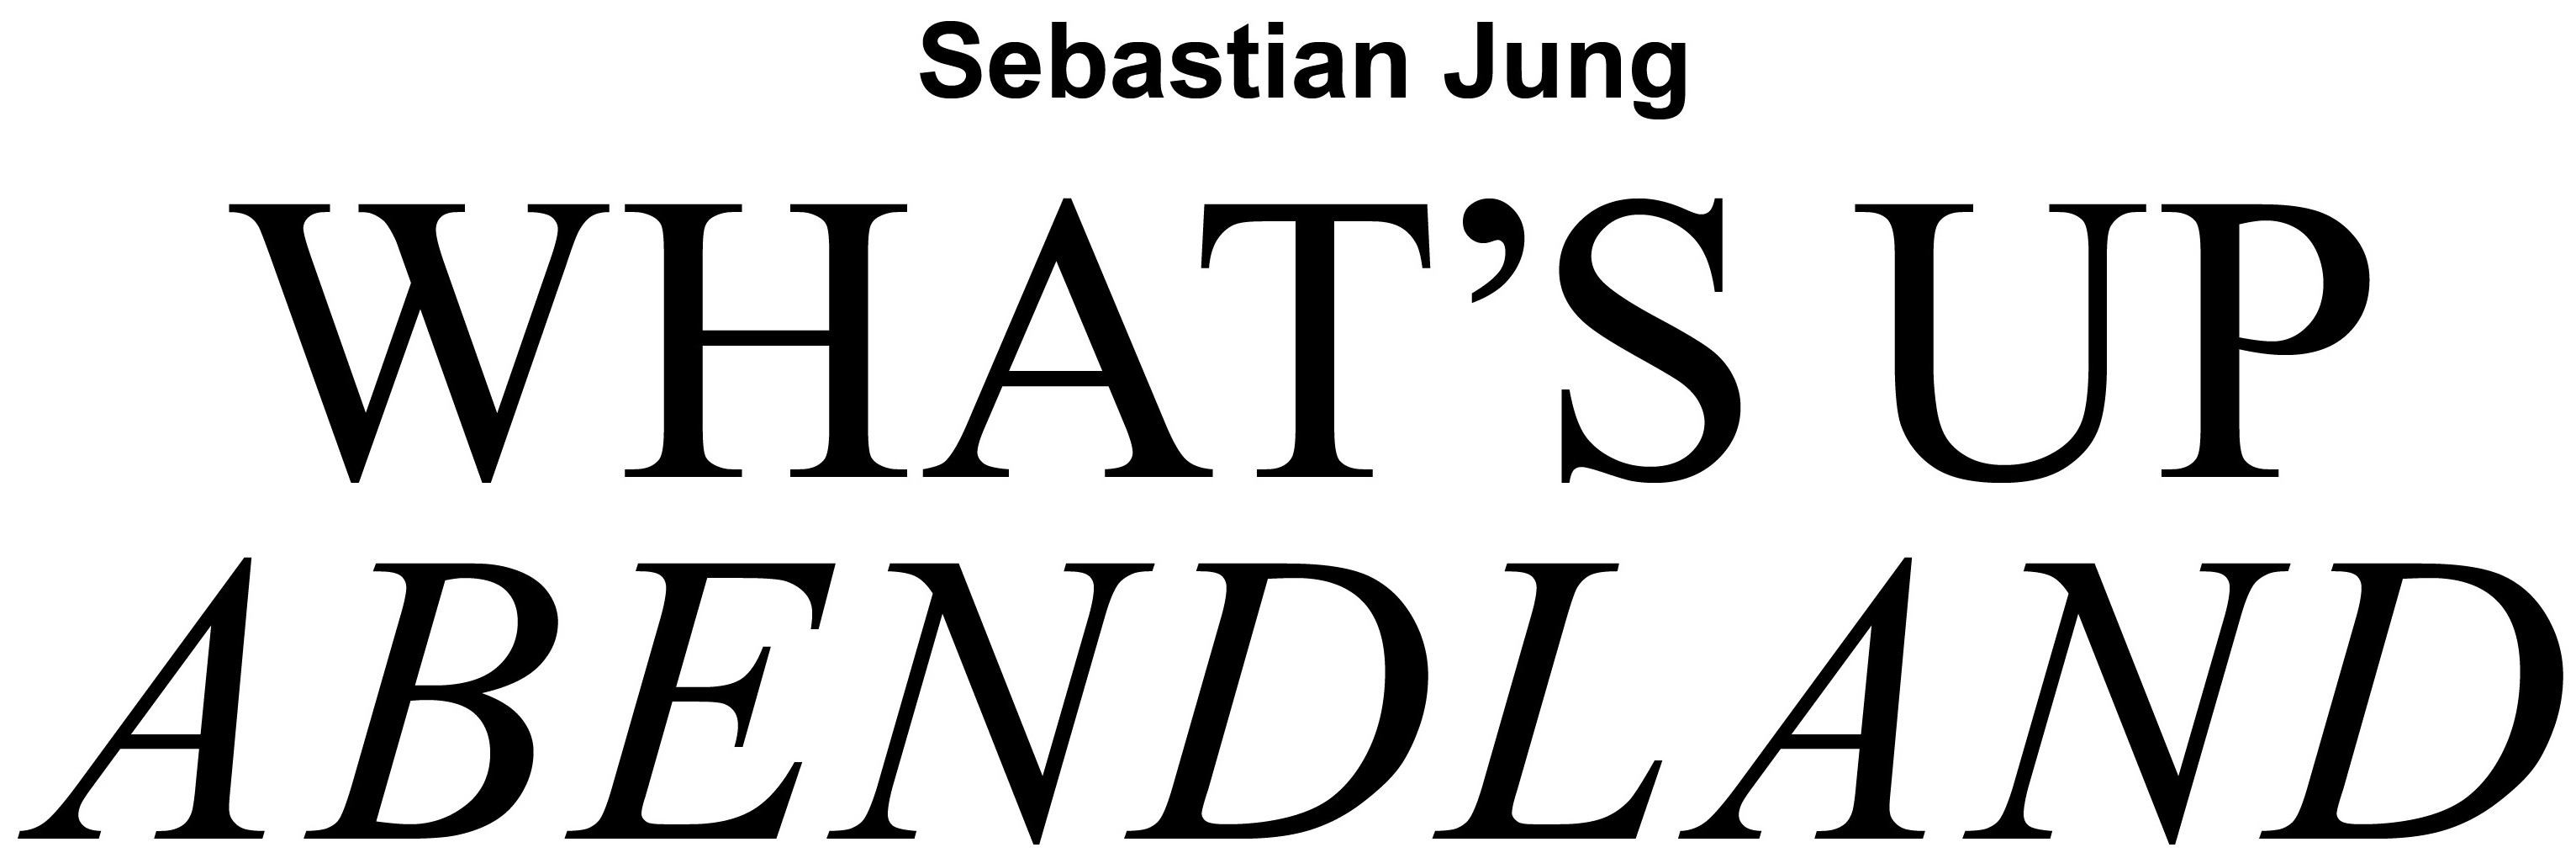 Sebastian Jung: WHAT'S UP ABENDLAND